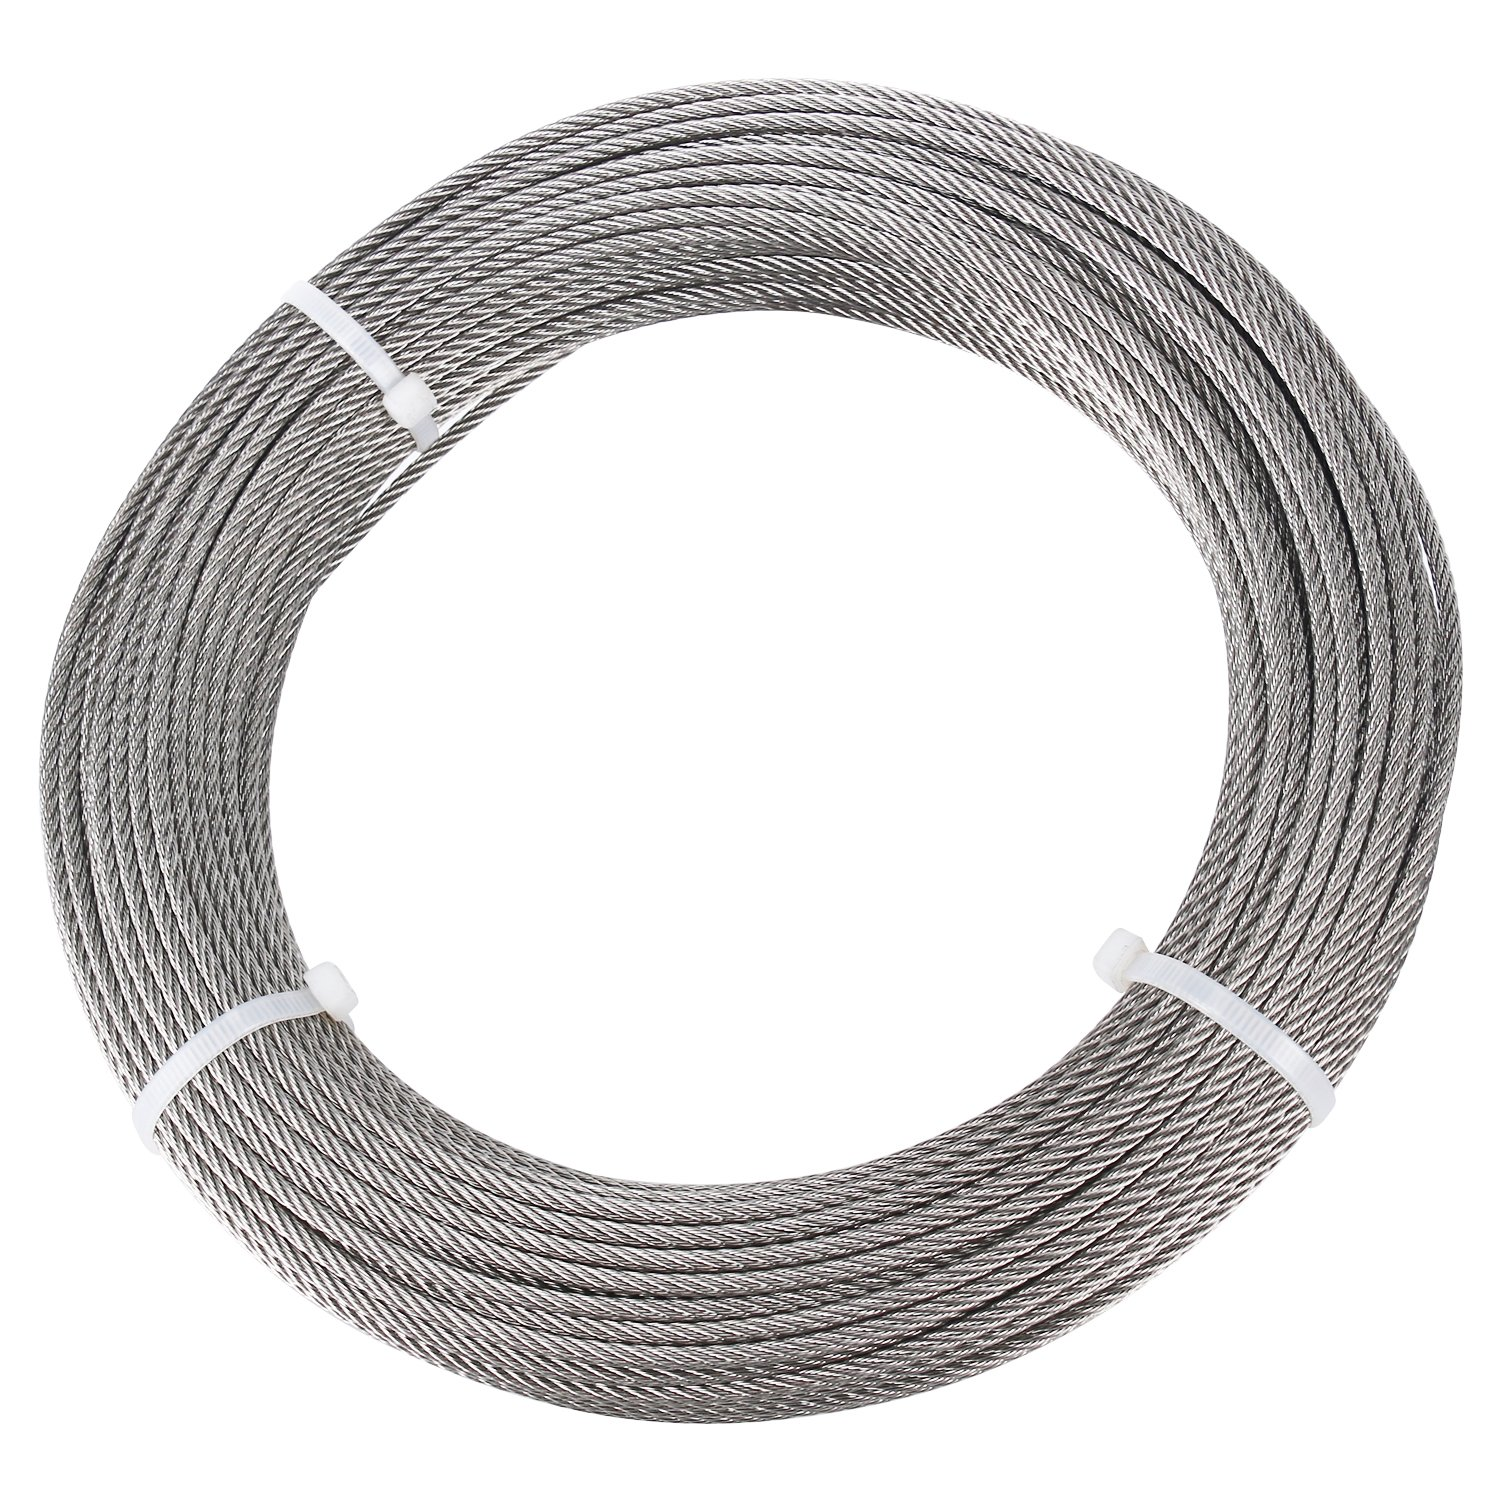 DasMarine Stainless Aircraft Steel Wire Rope Cable for Railing,Decking, DIY Balustrade, 1/8Inch,7x7,164Feet by DasMarine (Image #9)